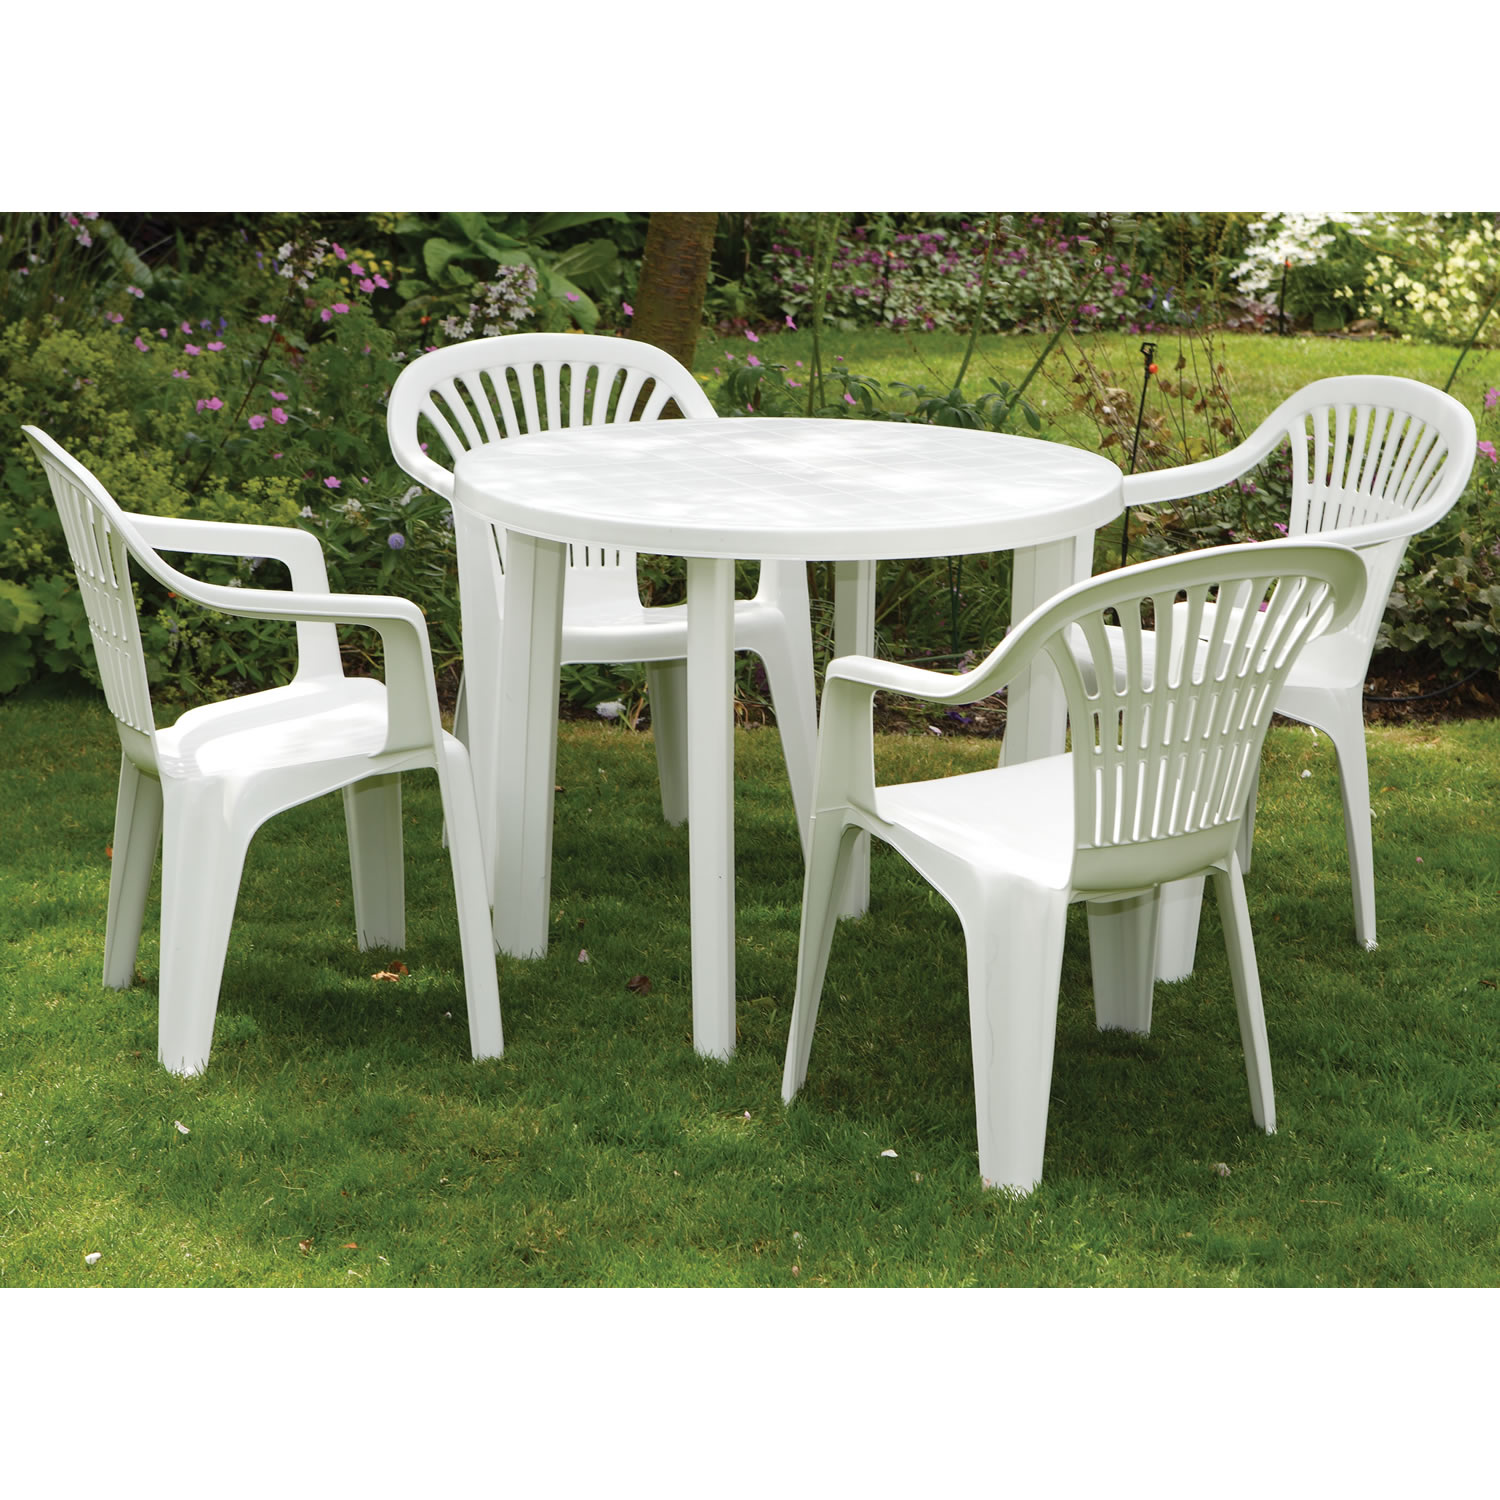 Garden Furniture Cheap Plastic garden furniture cheap in price and easy to maintain cheap plastic garden furniture jdy69et gojfuok workwithnaturefo